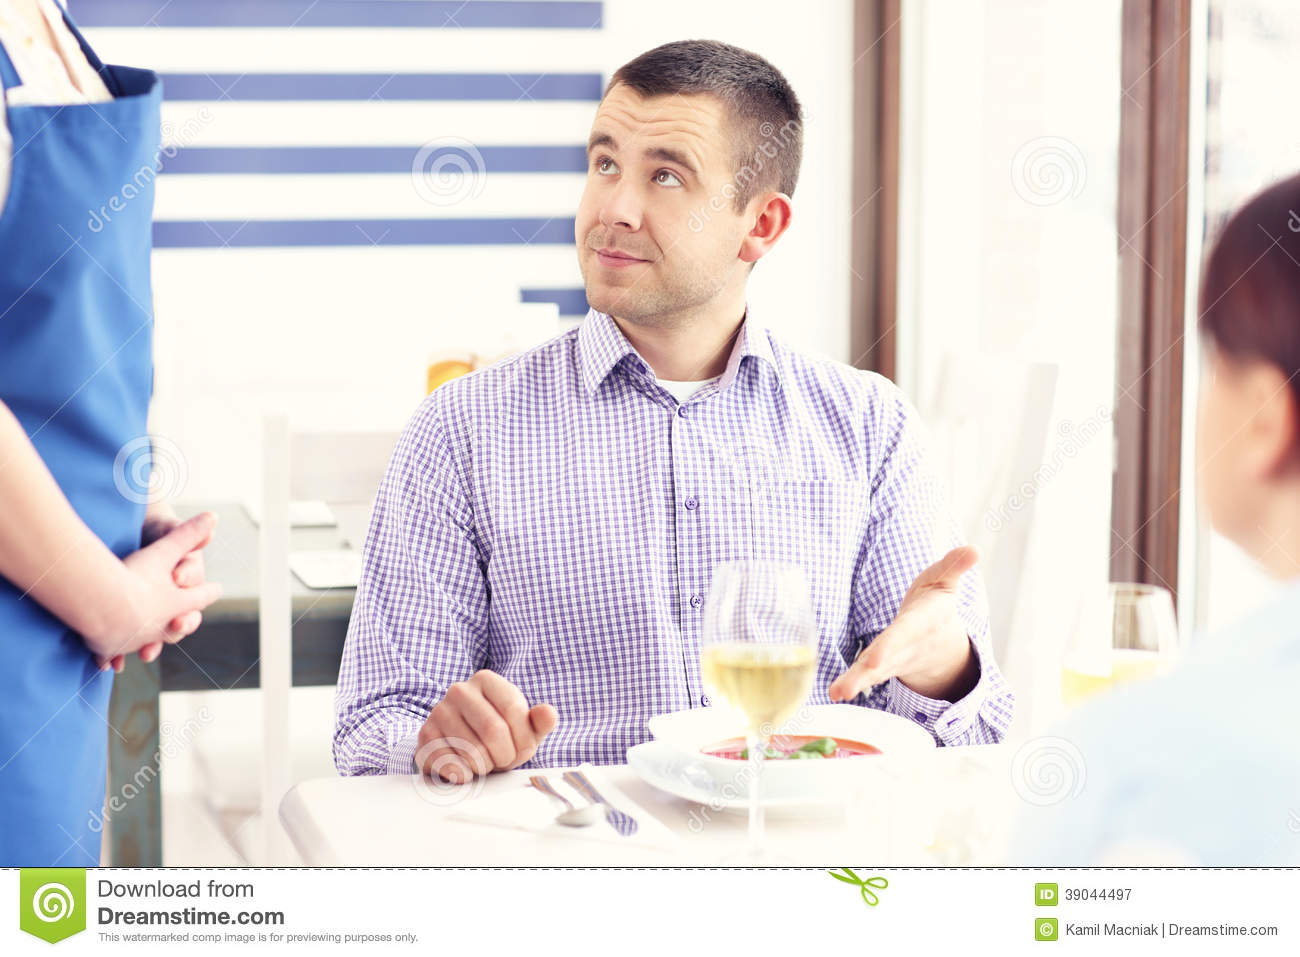 Unhappy Customer In A Restaurant Stock Image - Image of ...